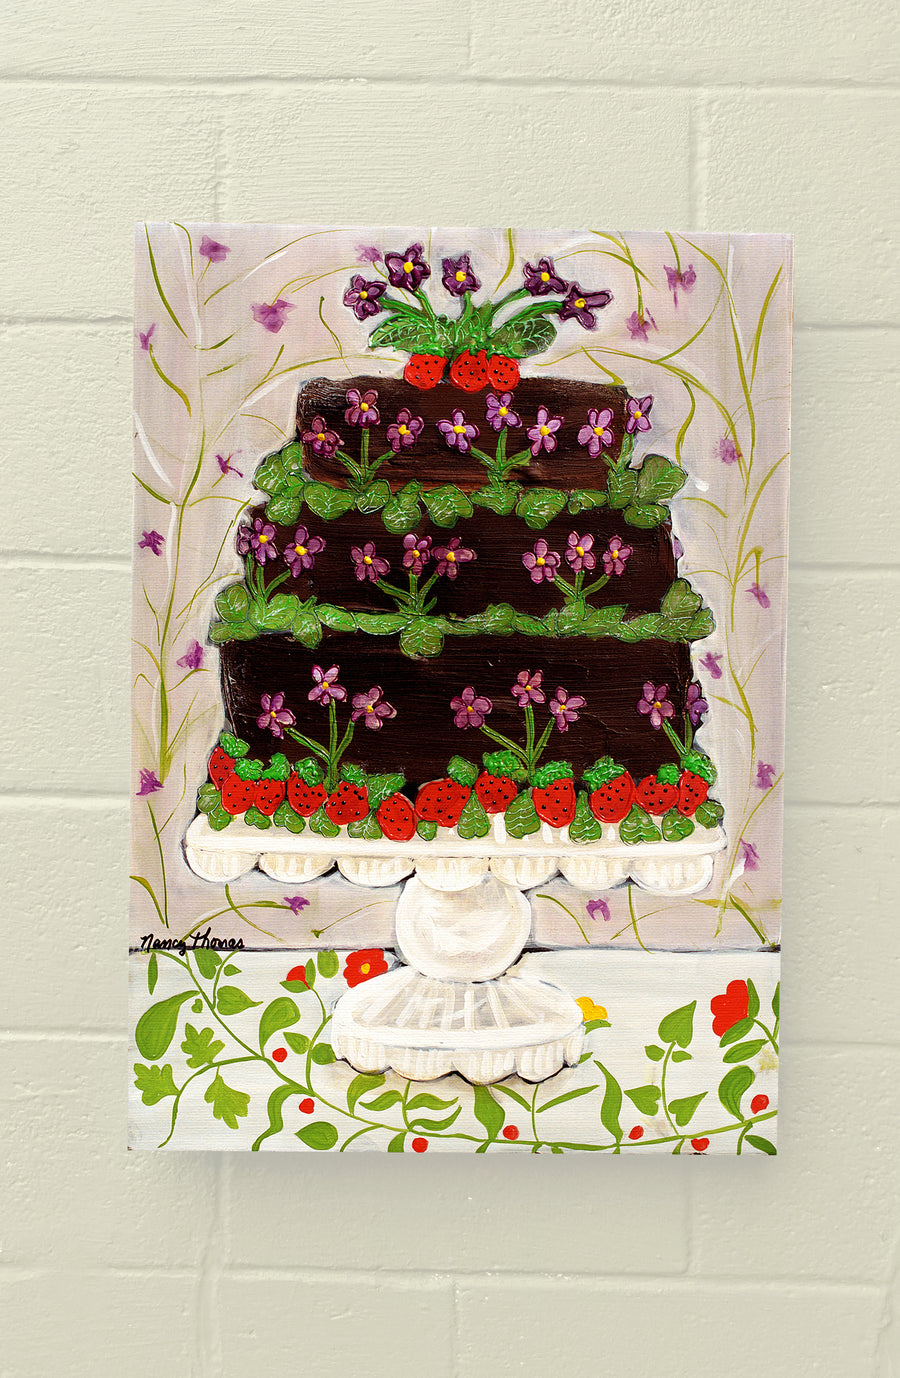 Gallery Grand - CAKE - Sweet Violets